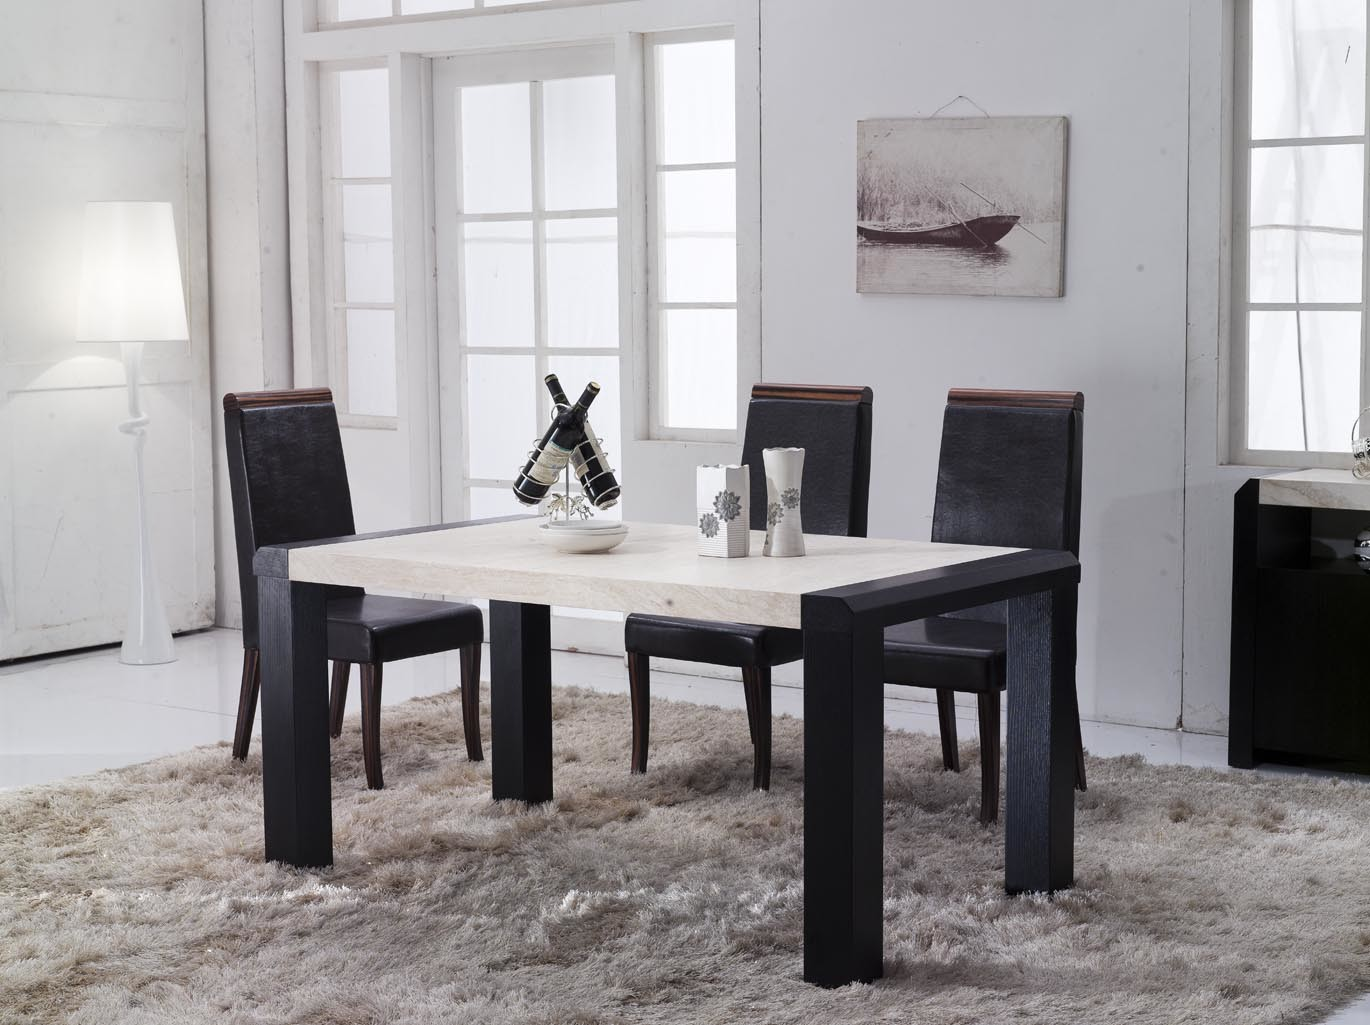 China marble top dining table 142 china modern wooden for Marble top dining table